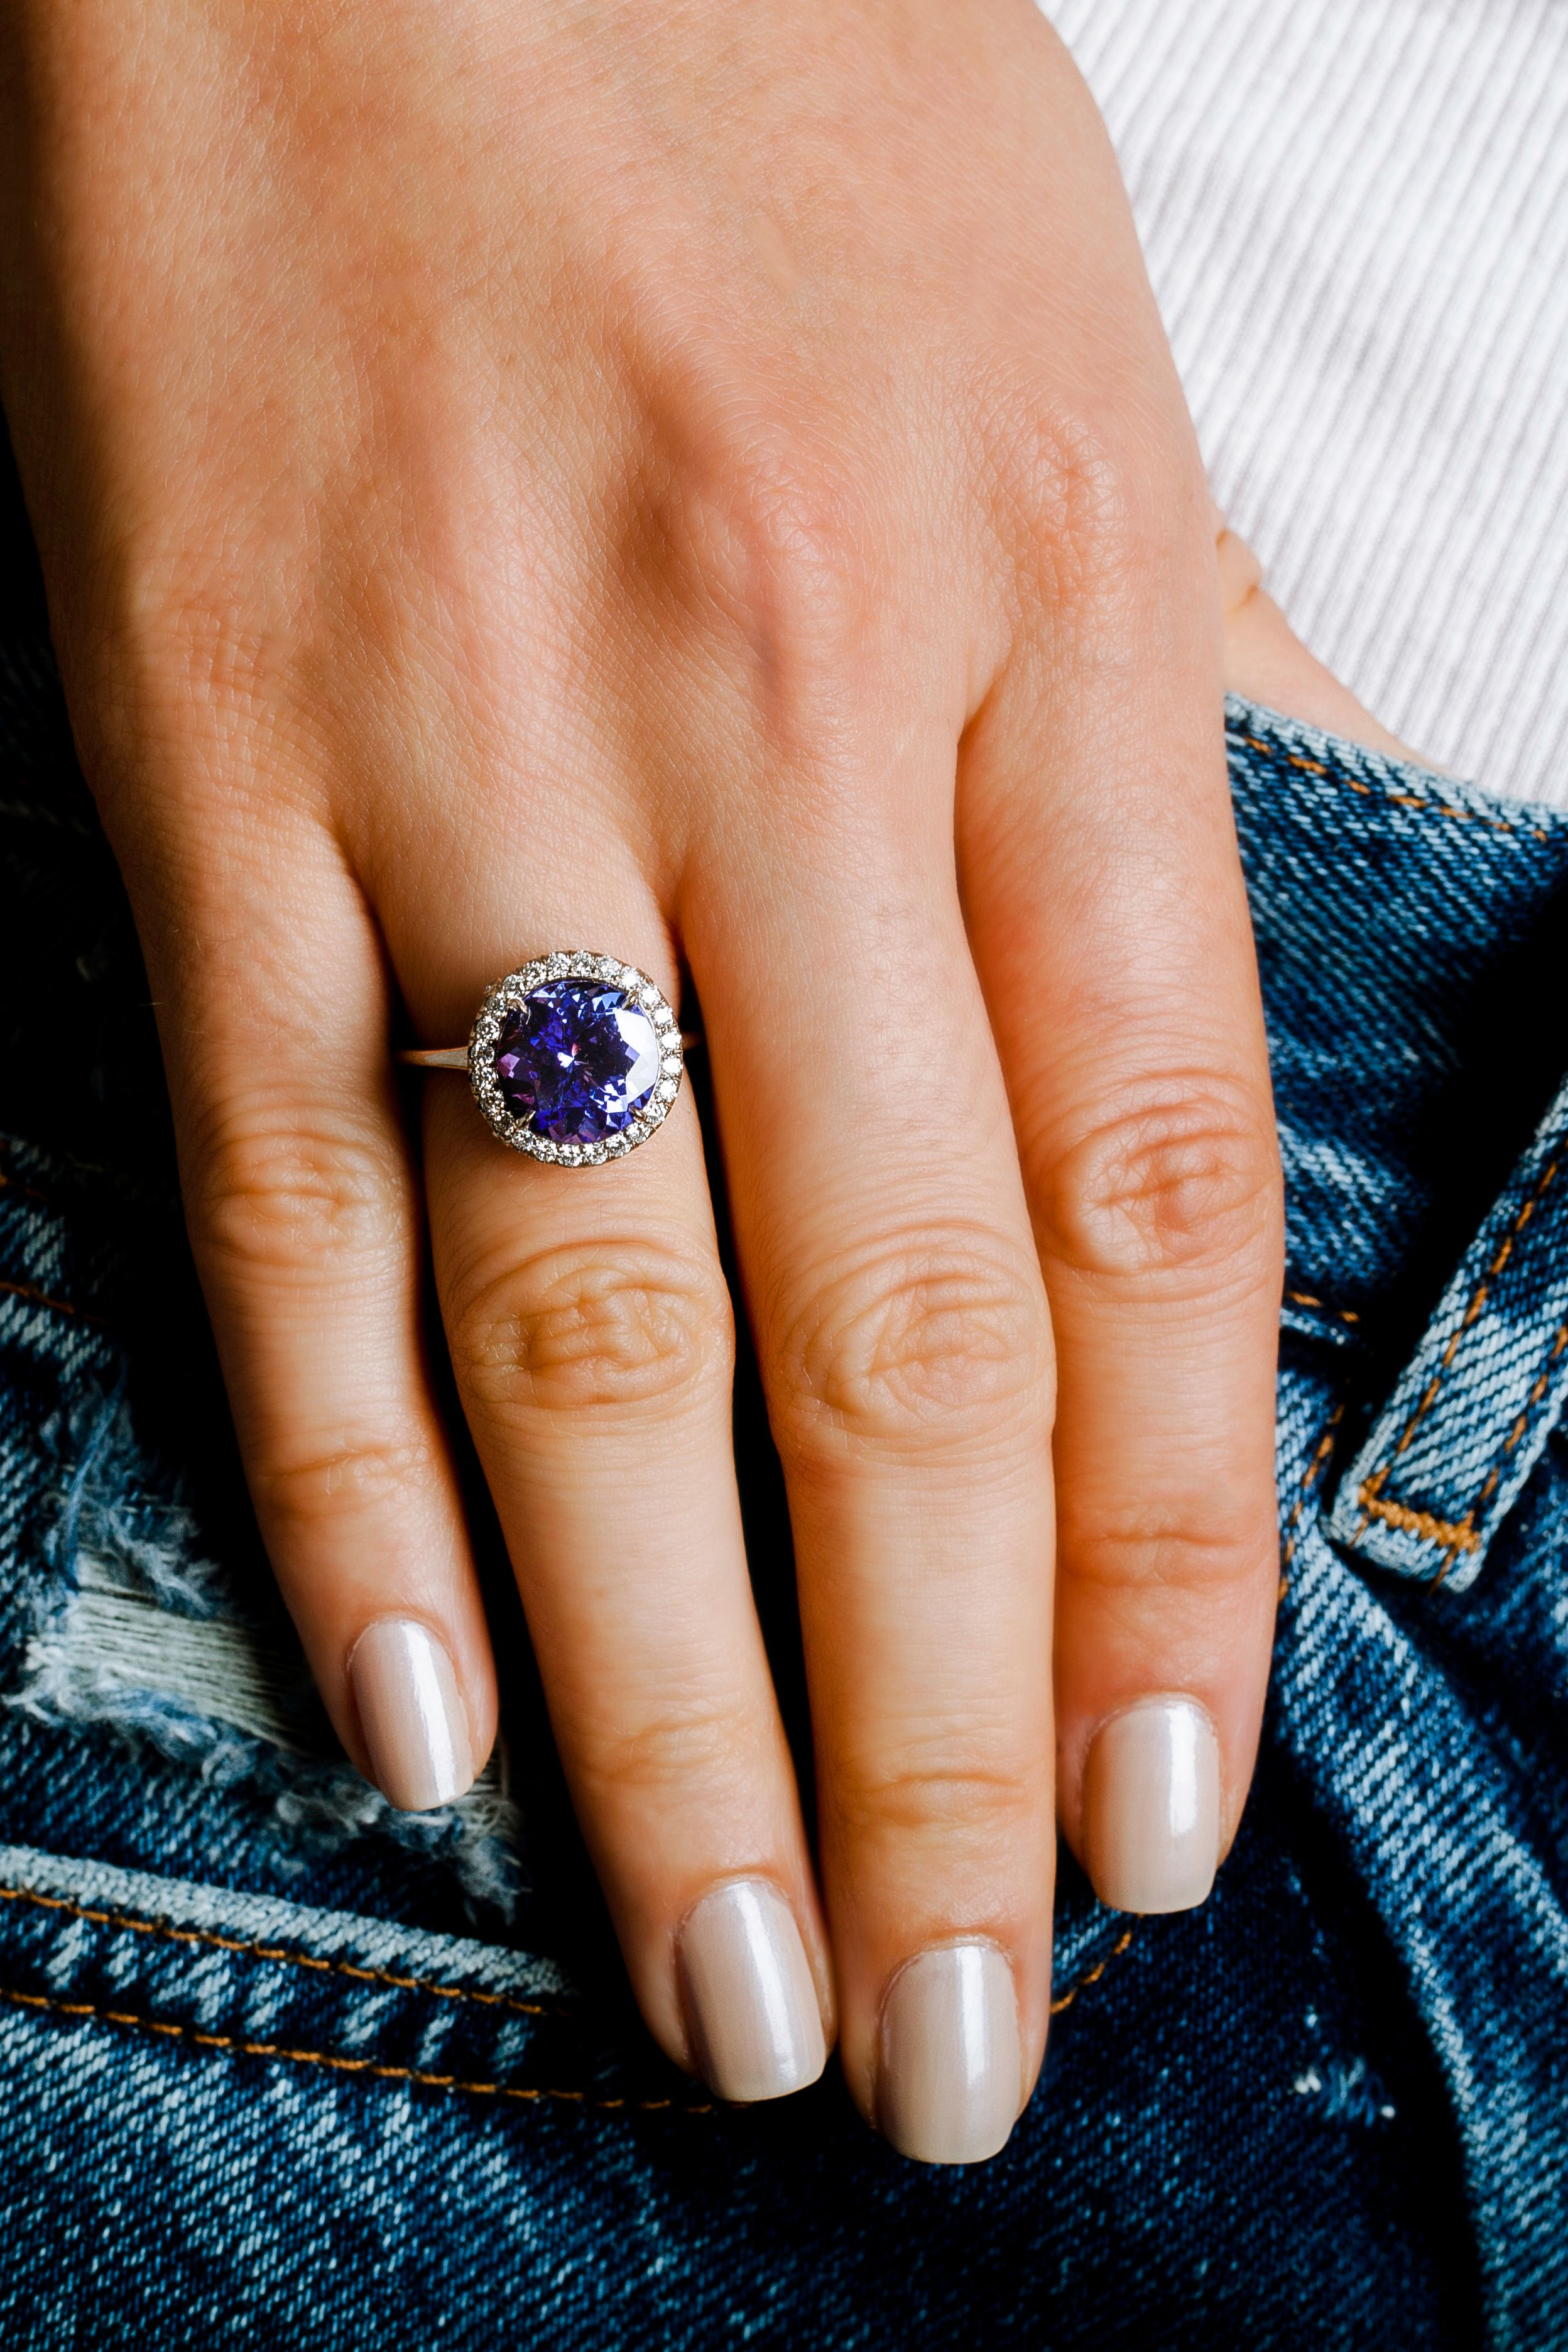 Sapphire engagement ring inspired by Princess Diana and